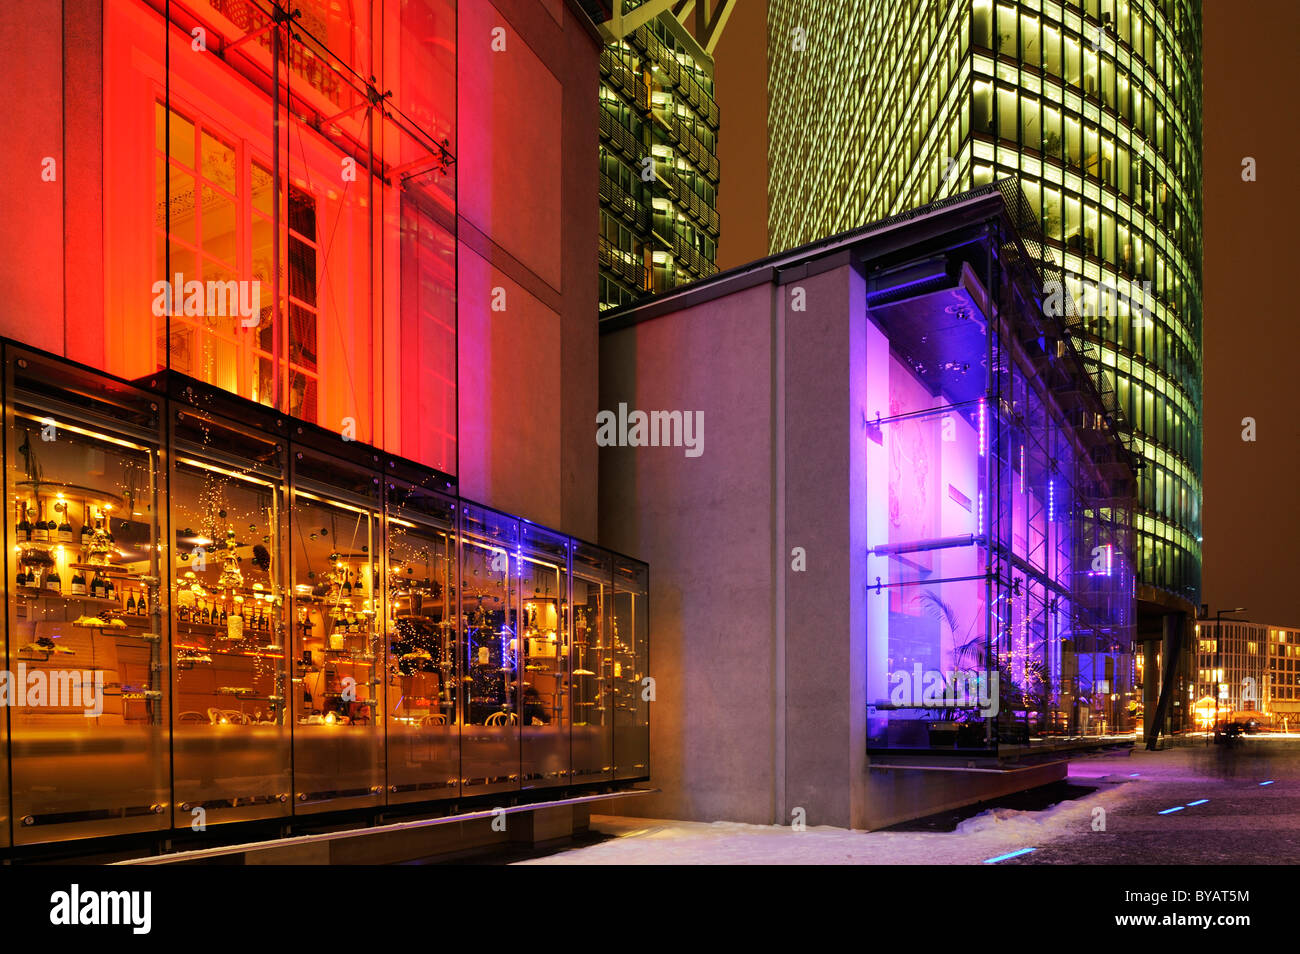 Installation of a Baroque facade in the Sony Center with Bahntower skyscraper, Potsdamer Platz, Berlin, Germany, - Stock Image